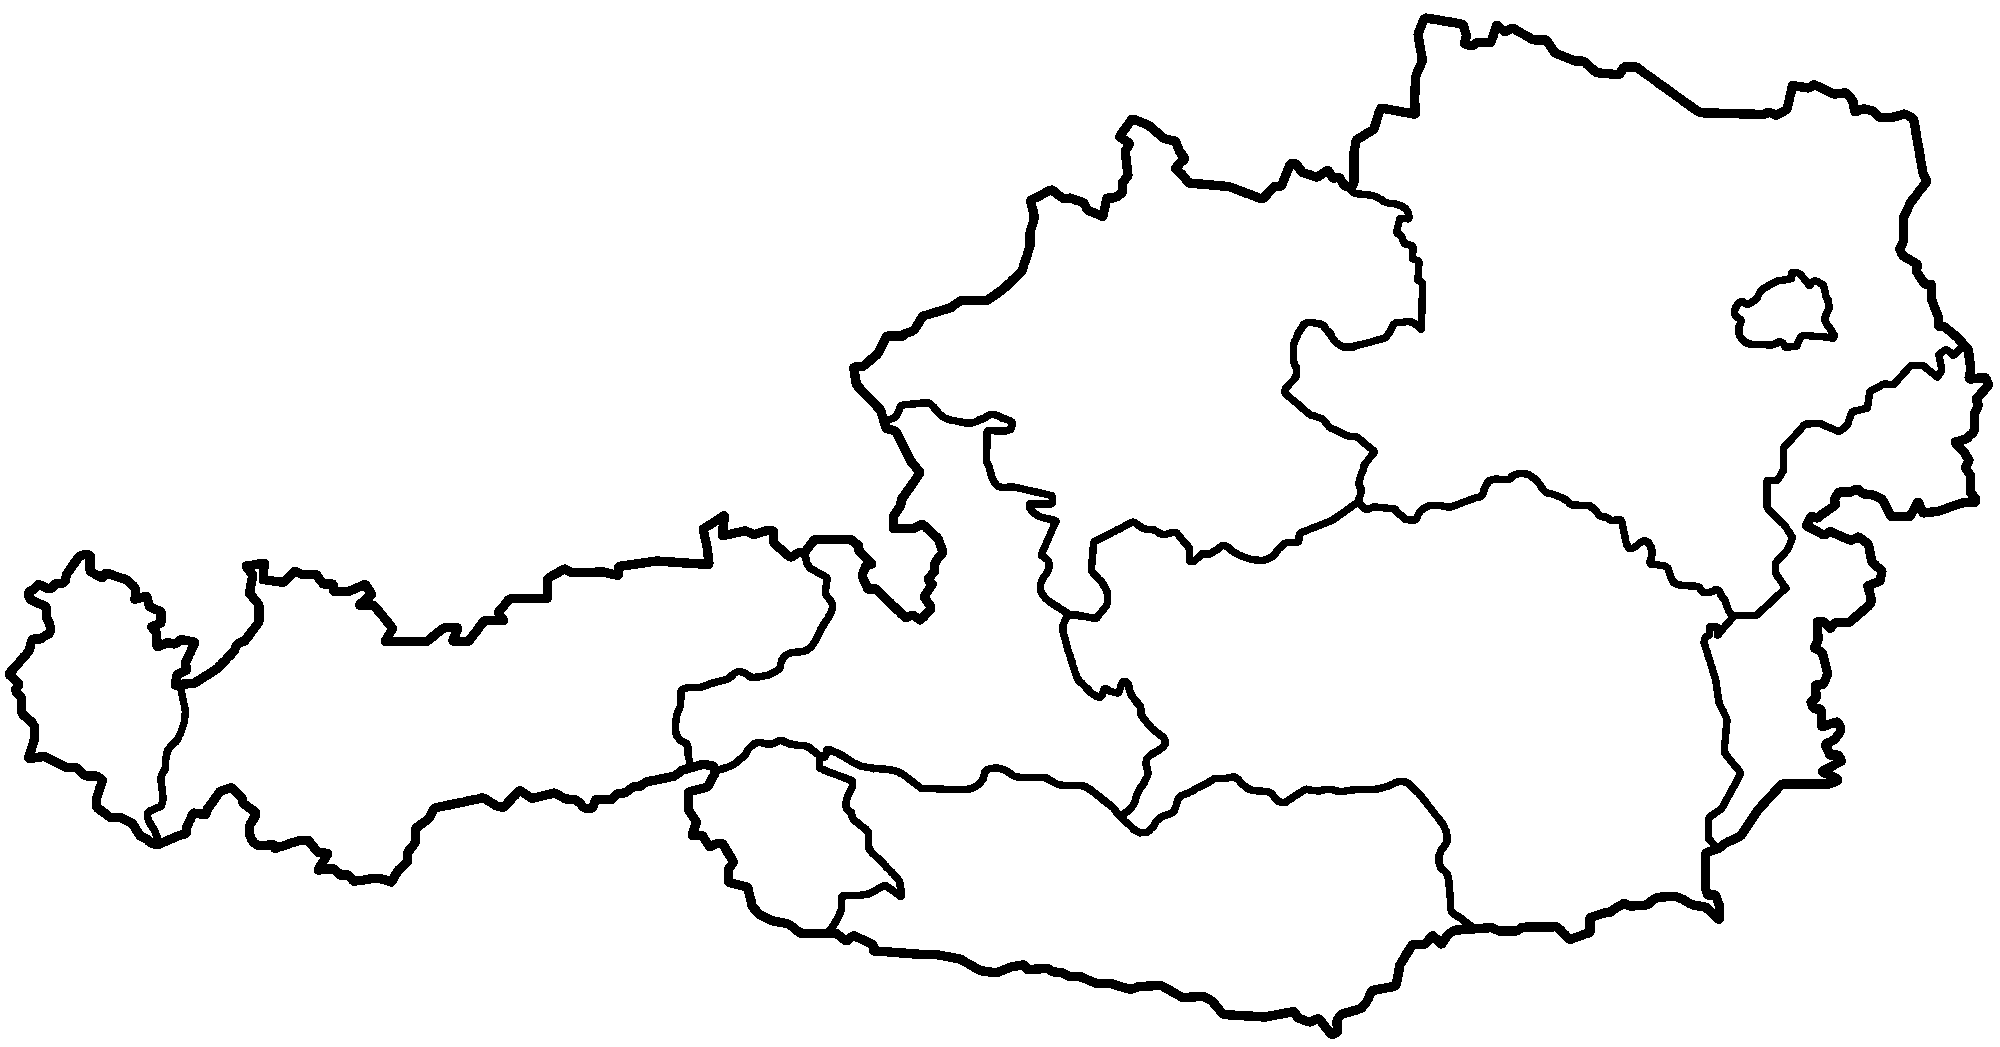 Blank Map Of Germany Map East Coast Map Of East Coast Of - Outline map of germany with states